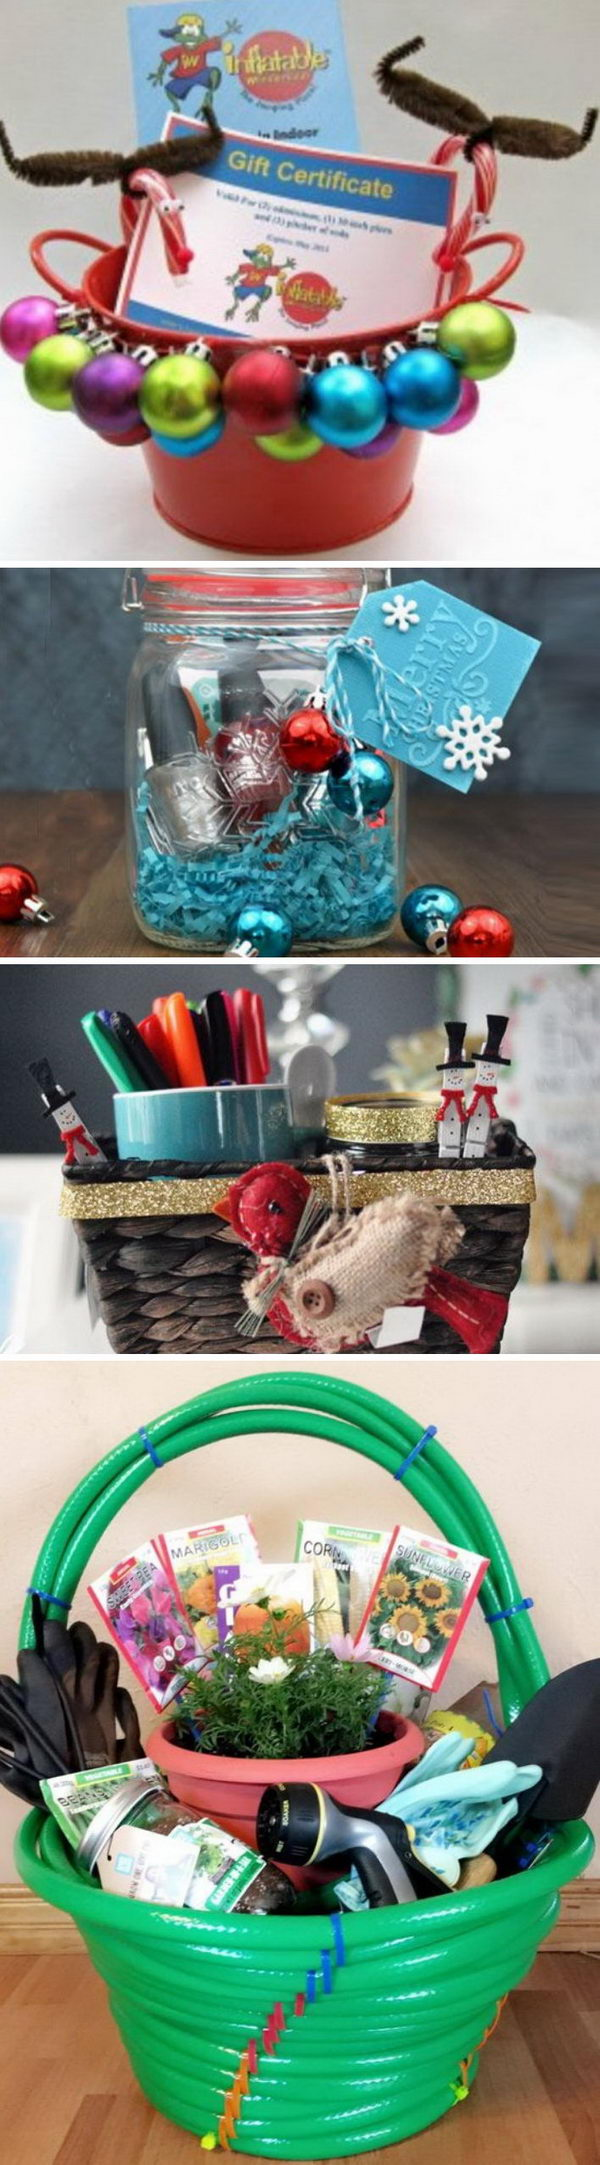 Christmas Gift Baskets Ideas.25 Diy Christmas Gift Basket Ideas 2017